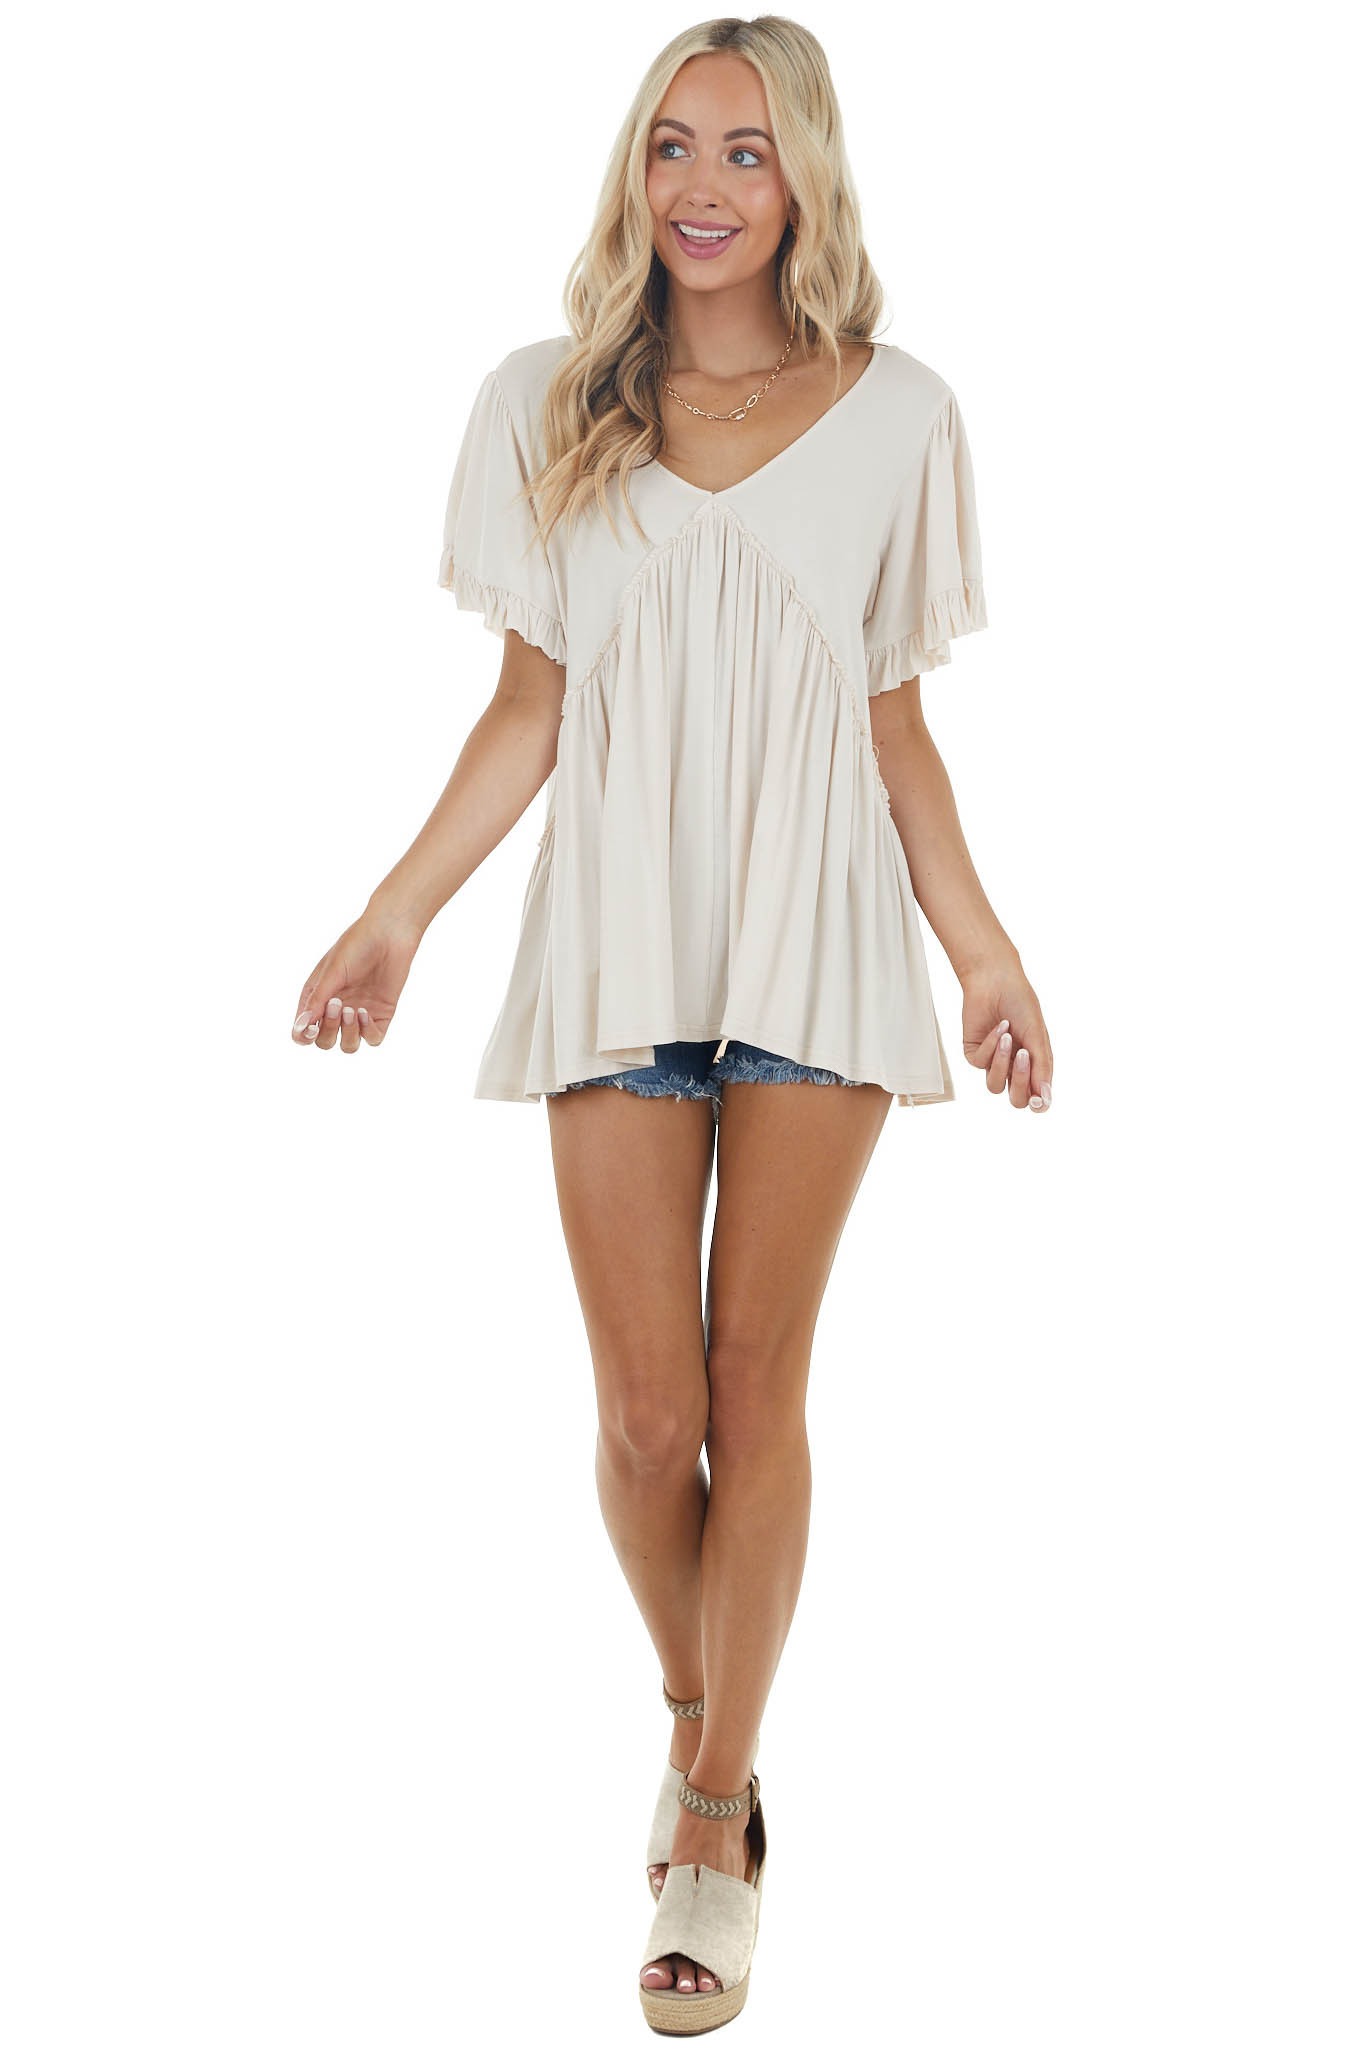 Champagne Jersey Knit Top with Short Ruffle Sleeves